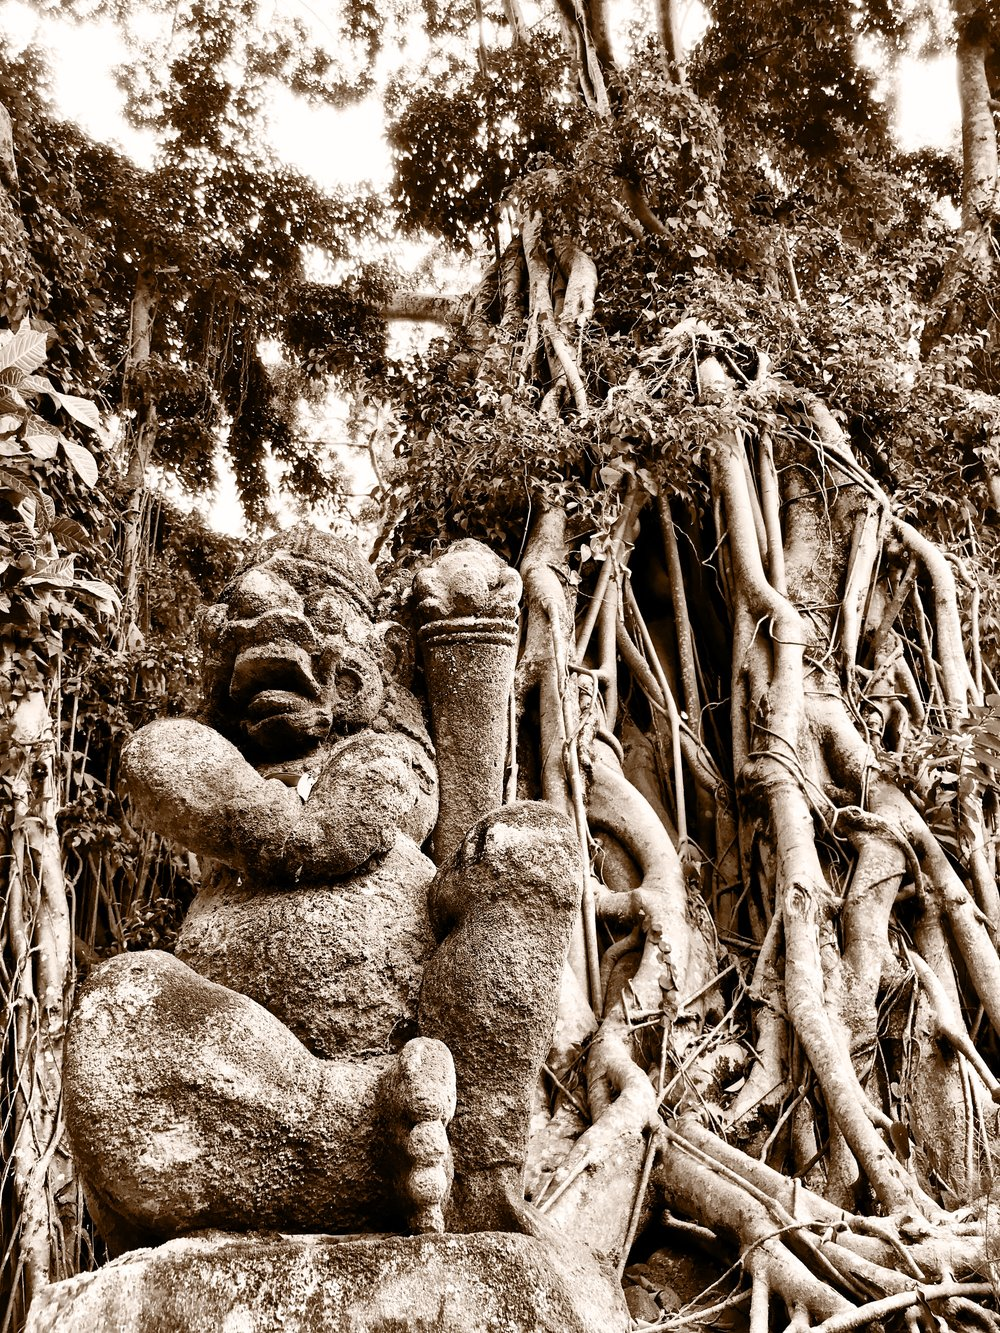 The gnarled roots of banyans pair nicely with demonic depictions